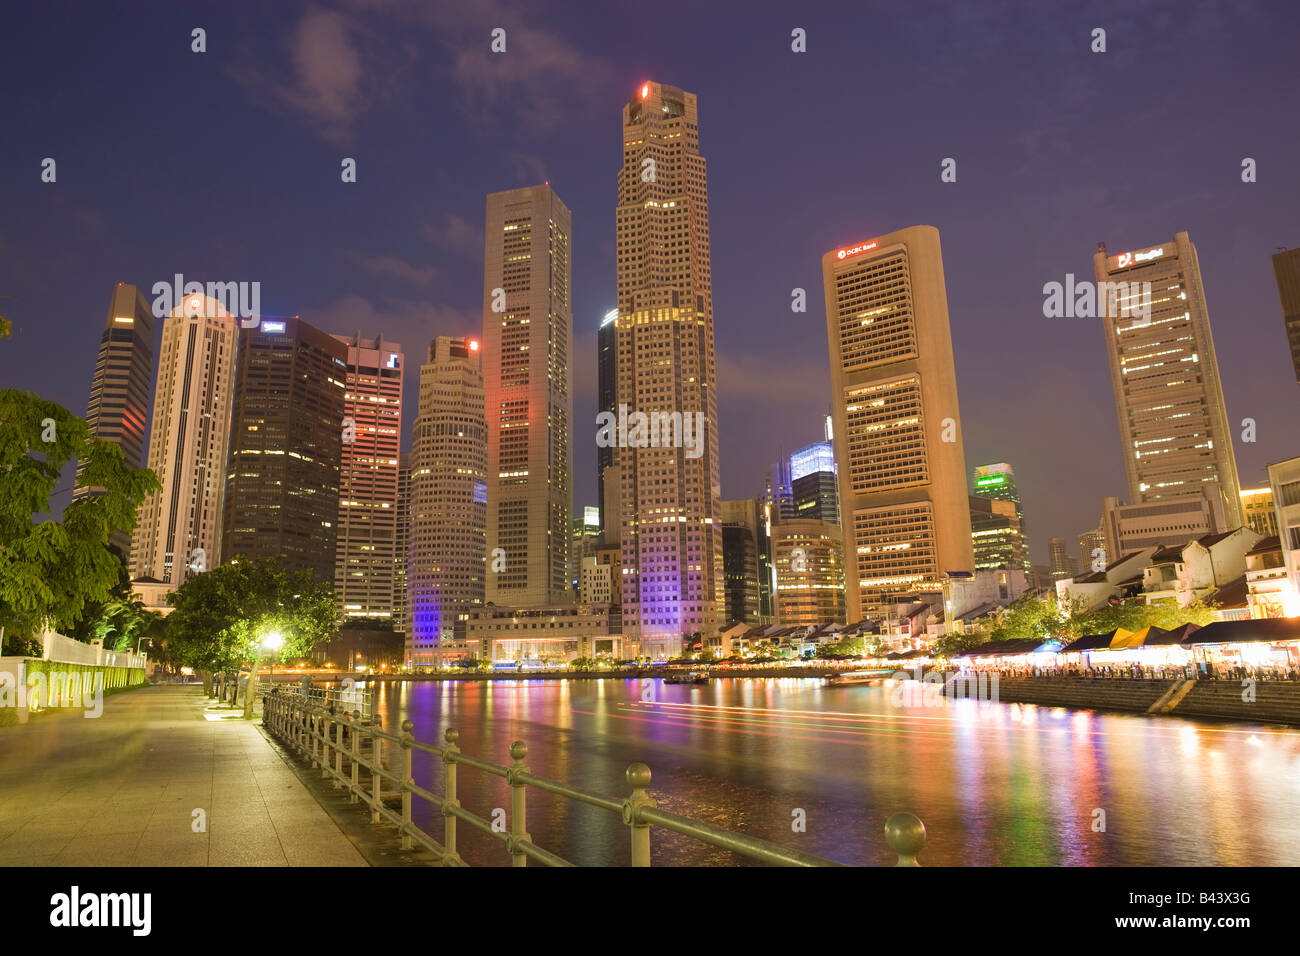 Asia Singapore Skyline Financial district at dusk - Stock Image